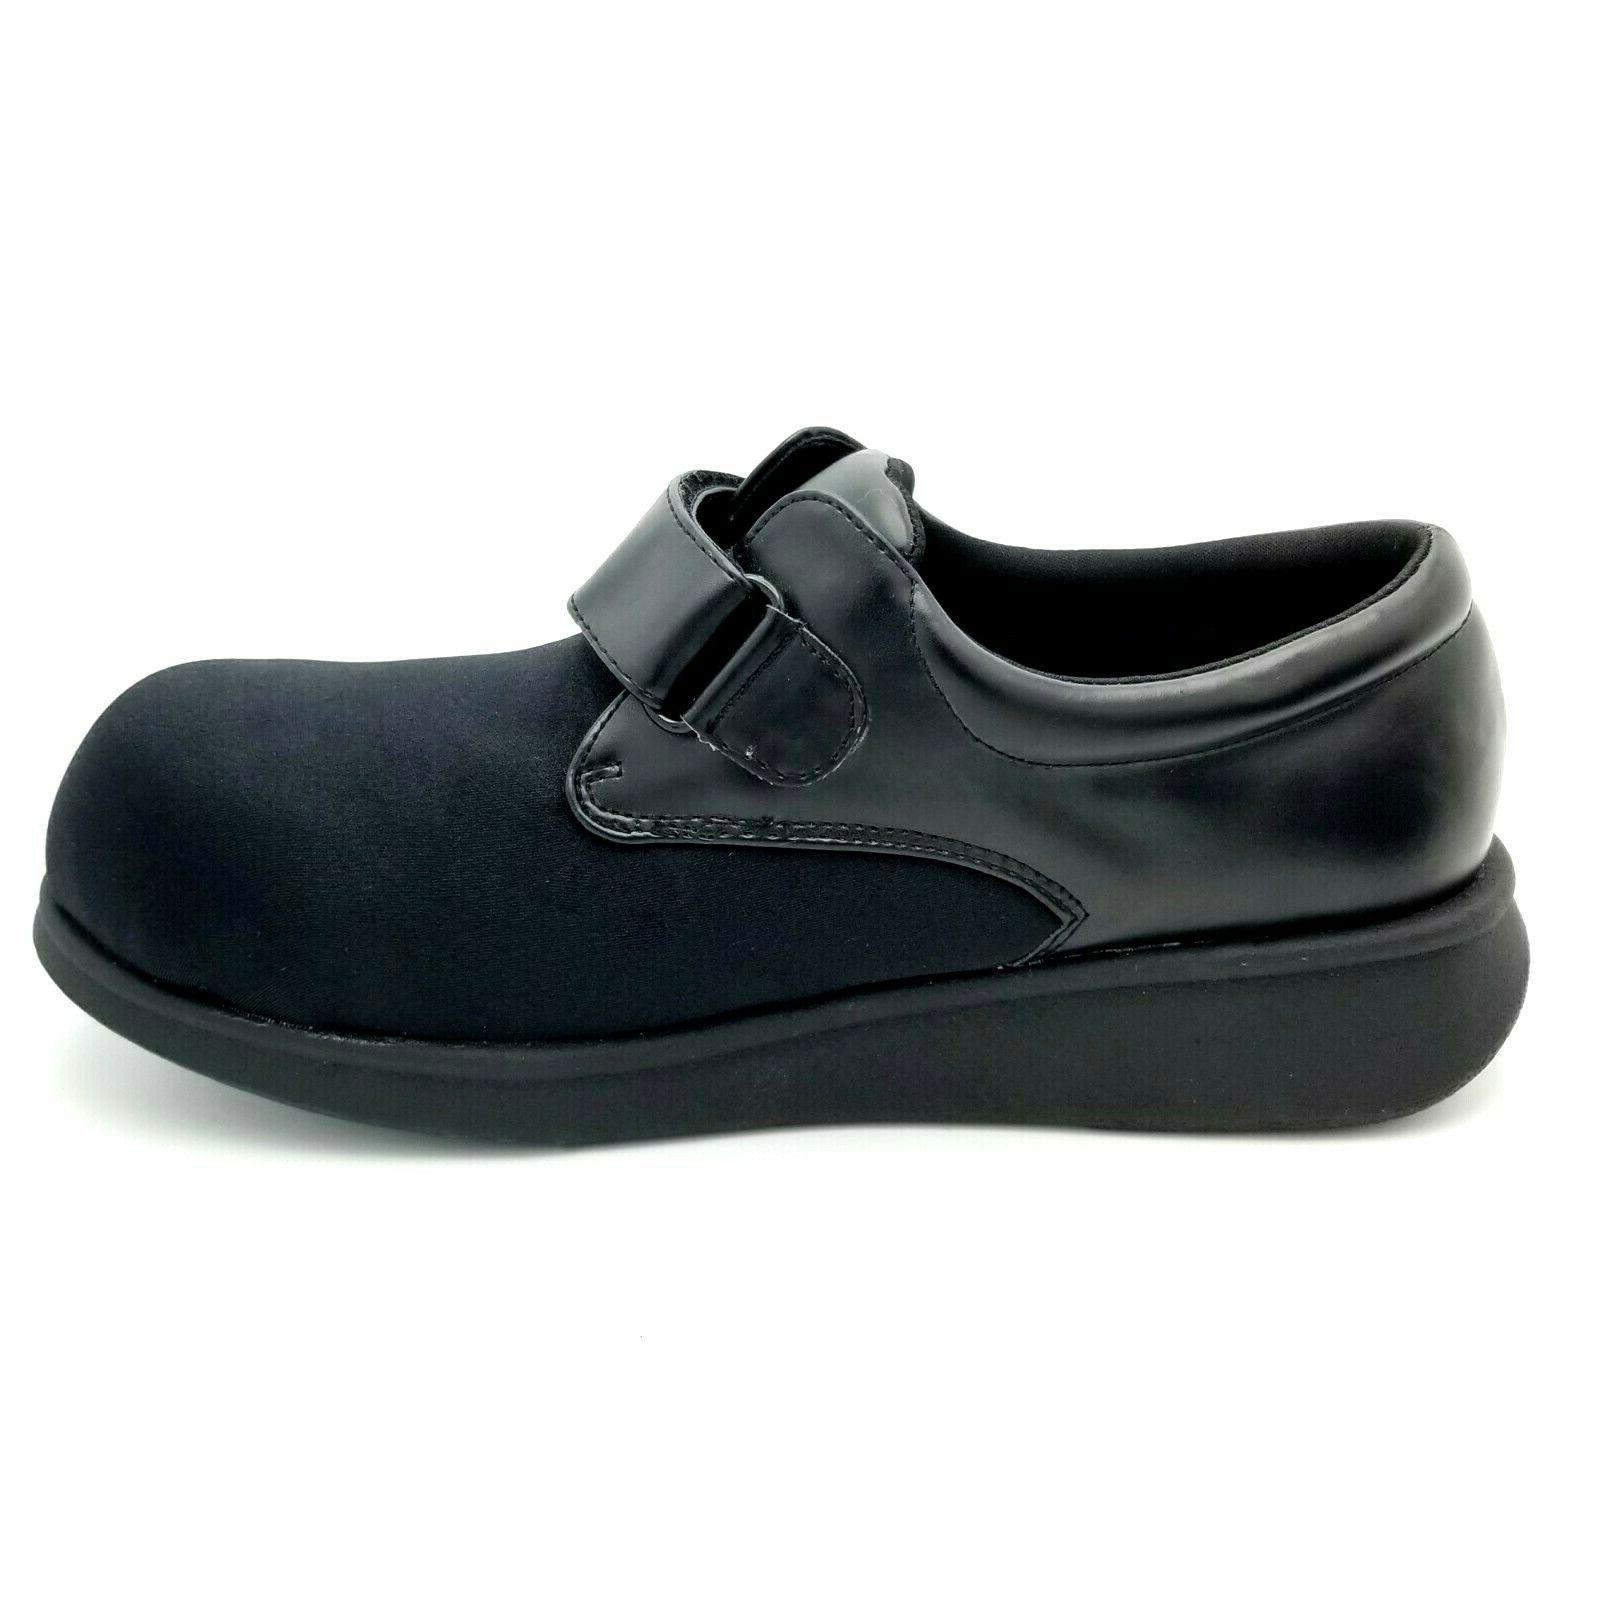 dr zen new blk comfort shoes unisex